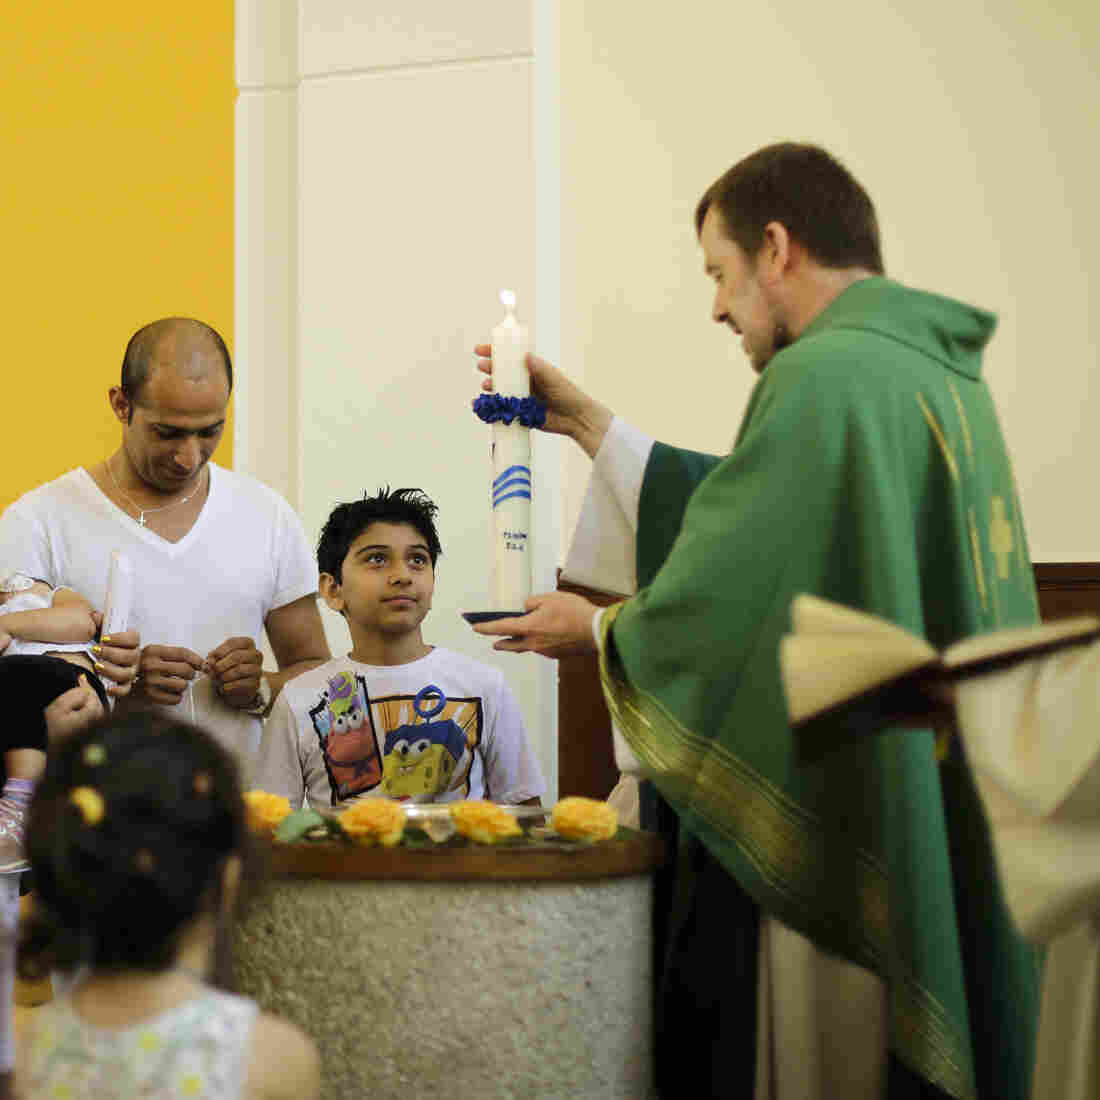 For Some Muslim Asylum-Seekers In Germany, Christianity Beckons